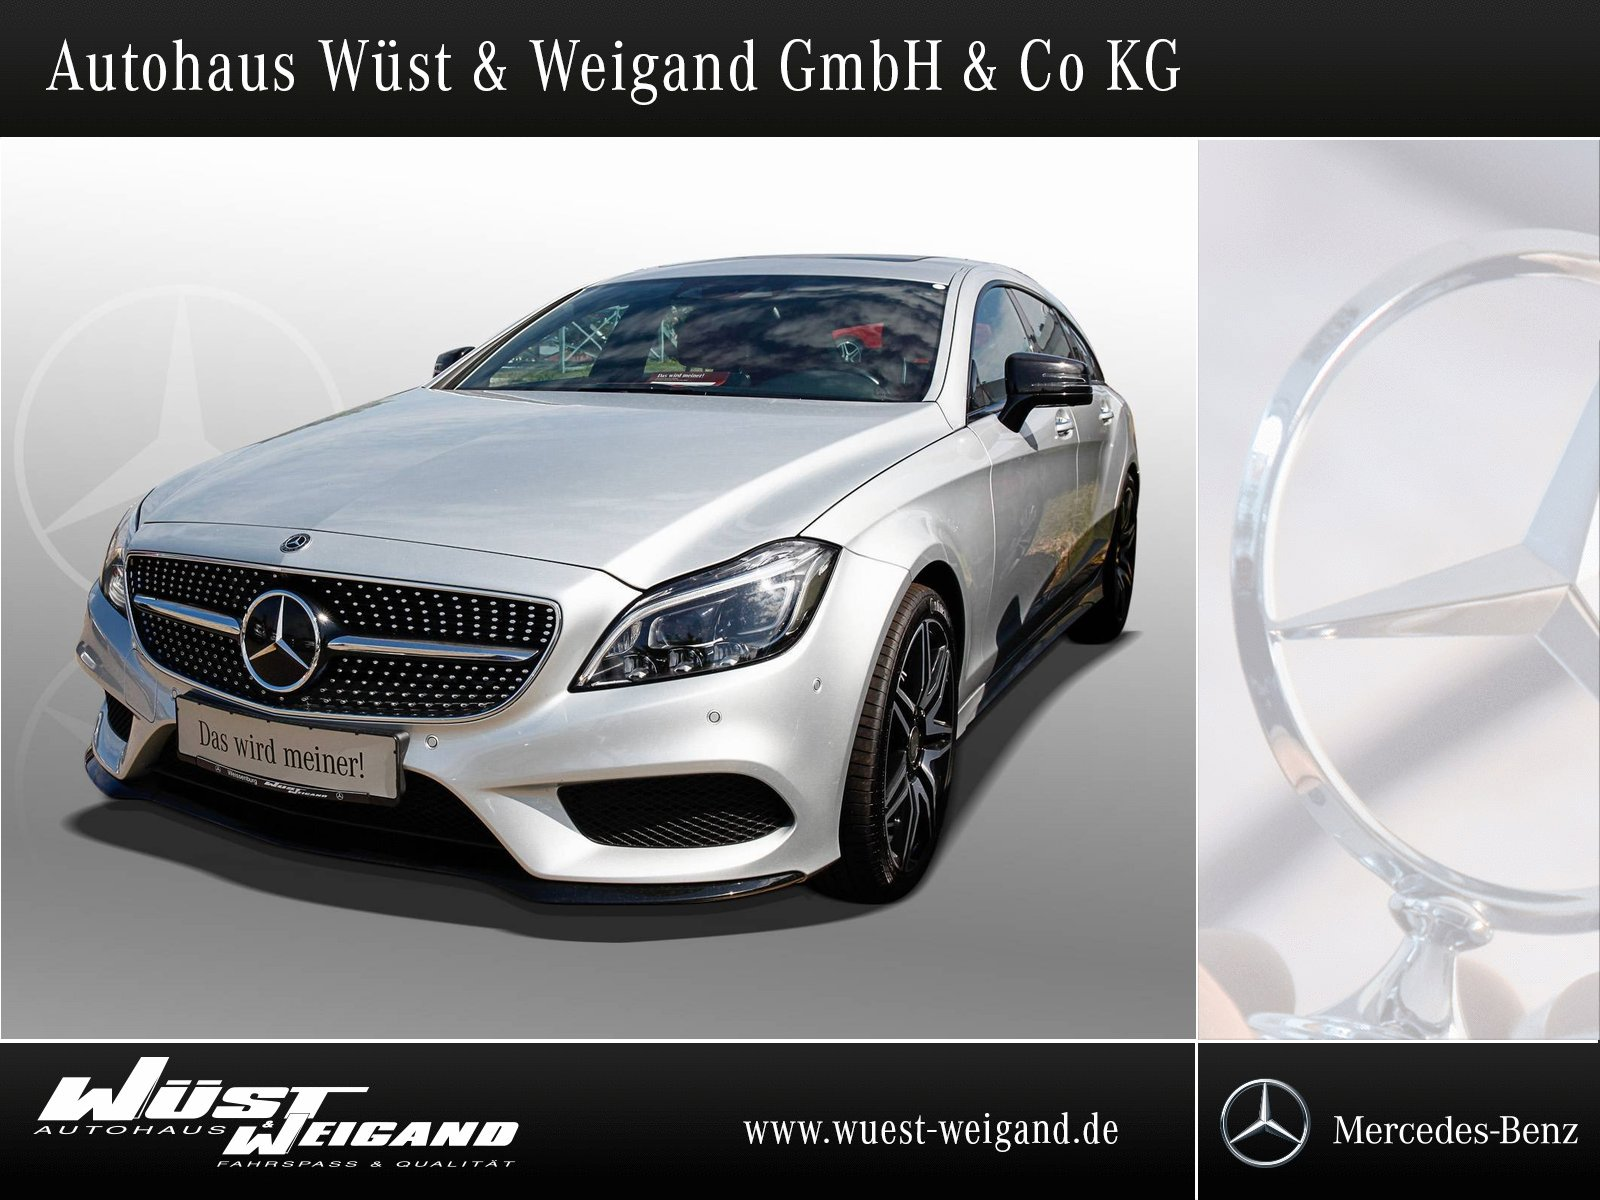 Mercedes-Benz CLS 500 4M SB AMG Styling+Distronic+Comand+LED, Jahr 2016, Benzin